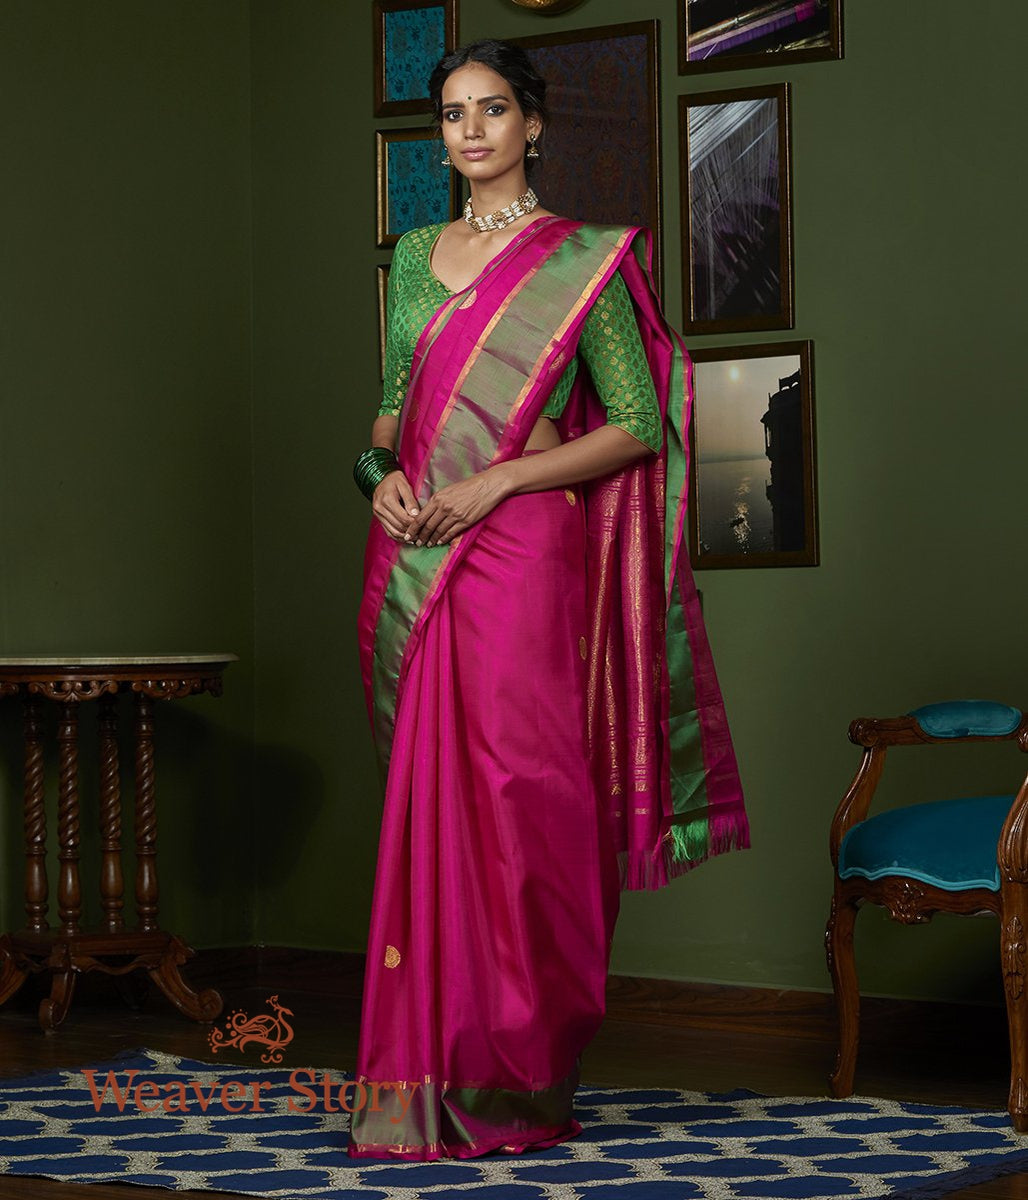 Handwoven Pink Kanjivaram Silk Saree with Zari Booti and Green Border